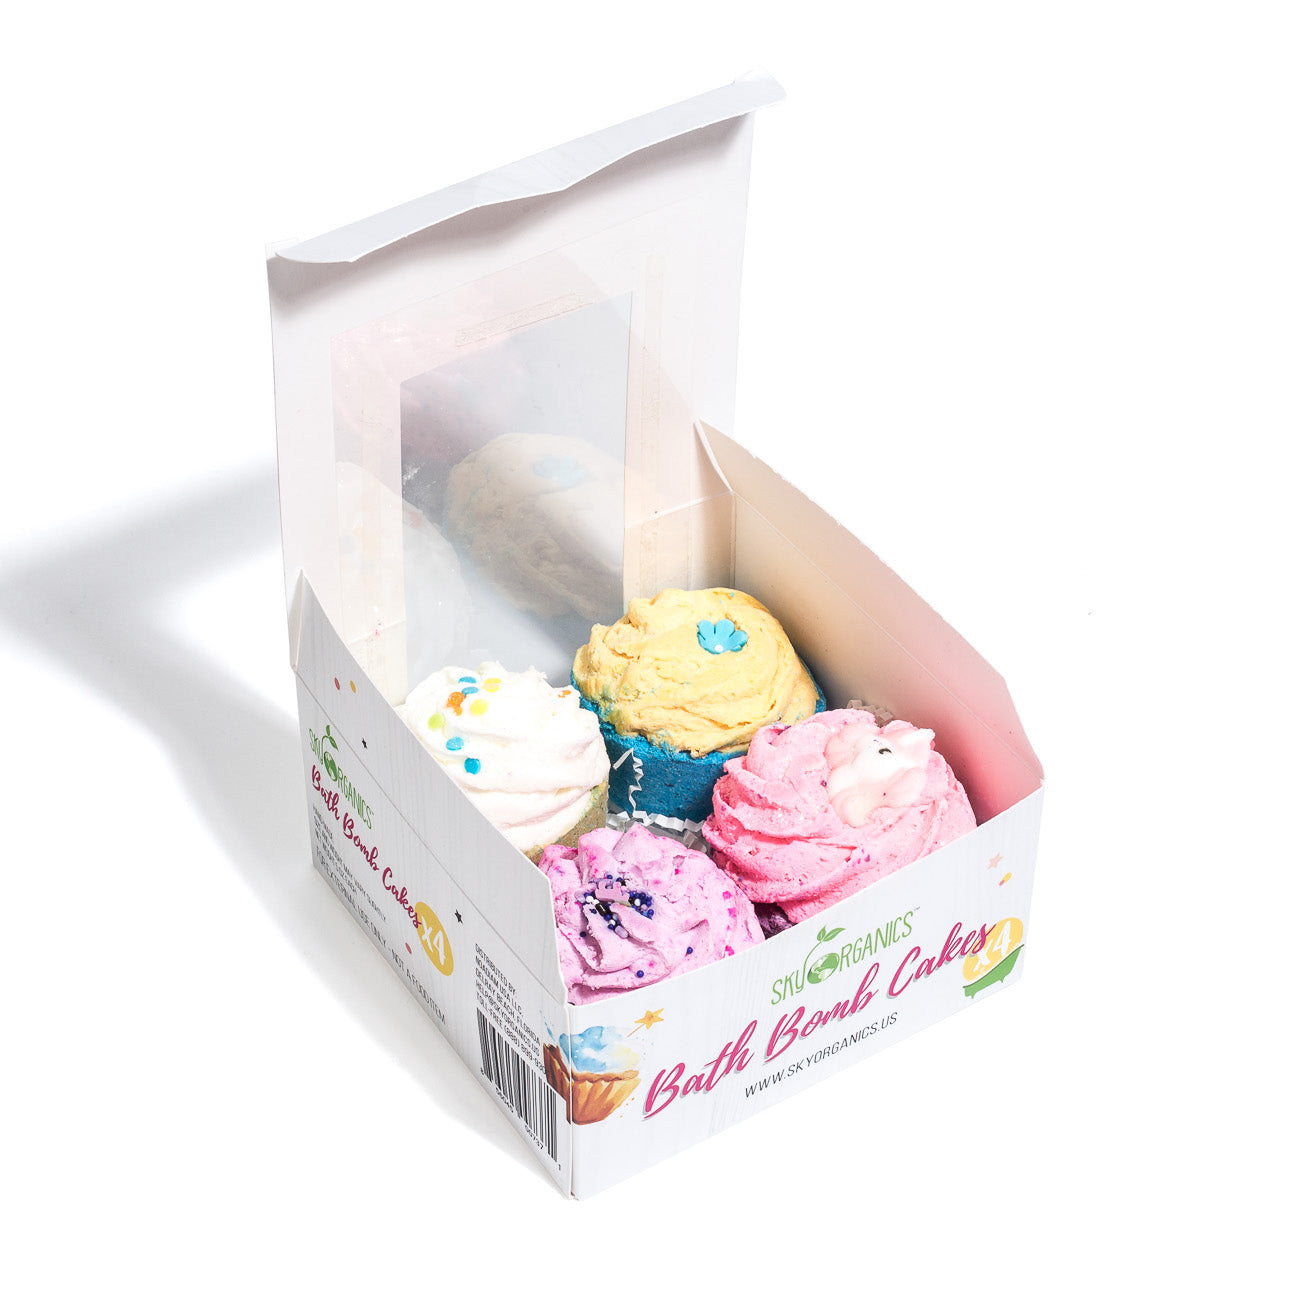 Bath Bomb Cupcakes Gift Set - 2in1 Bath Bomb and Bubble Bar